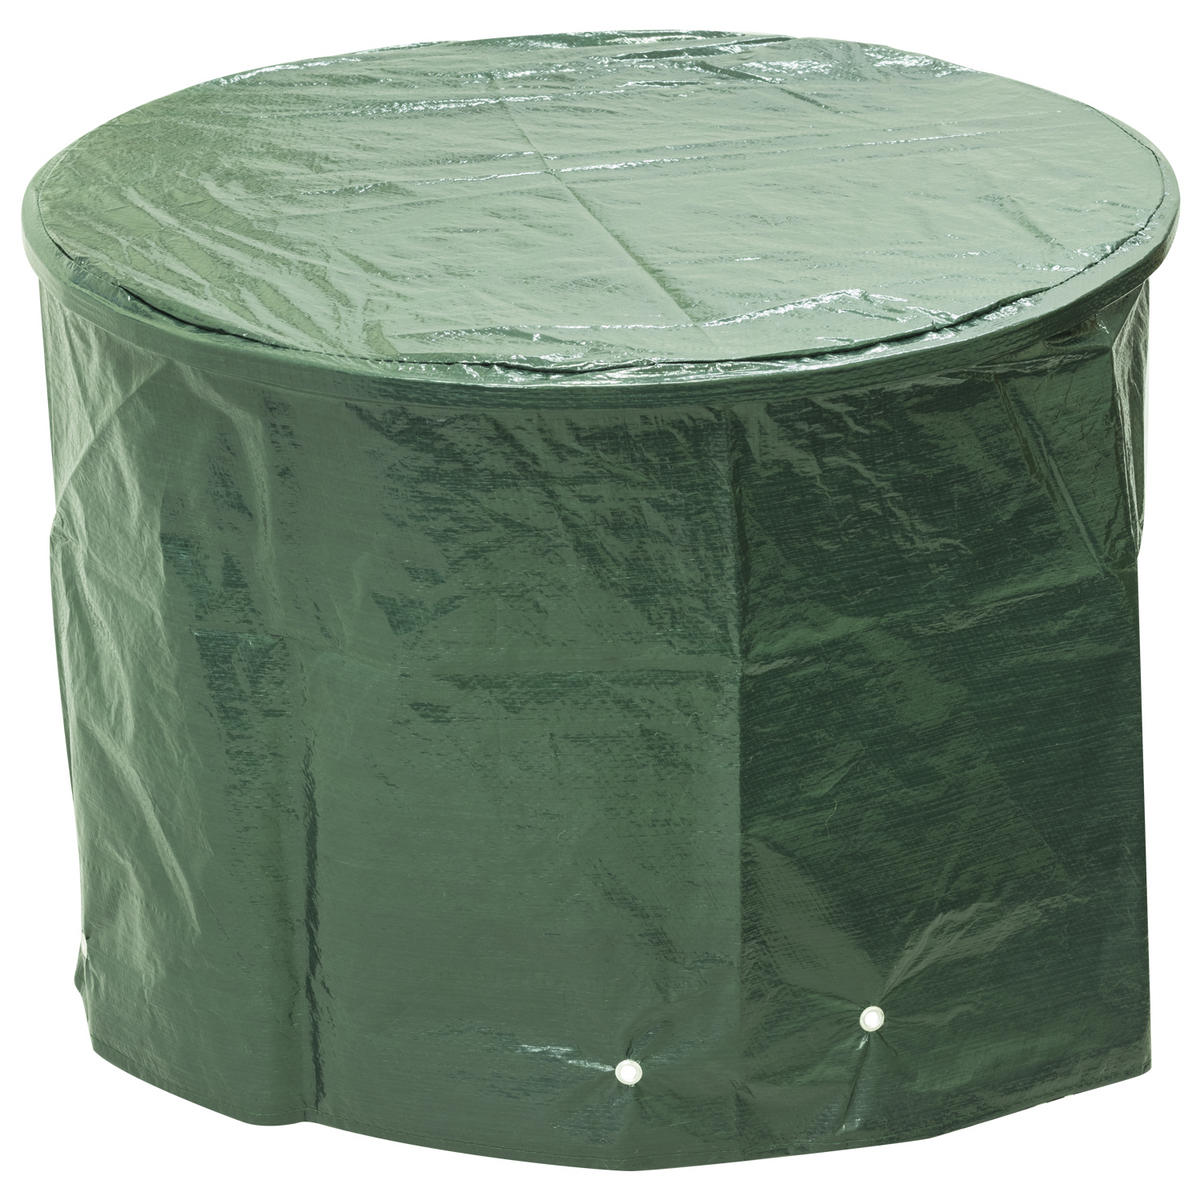 Woodside Kettle Barbecue Cover